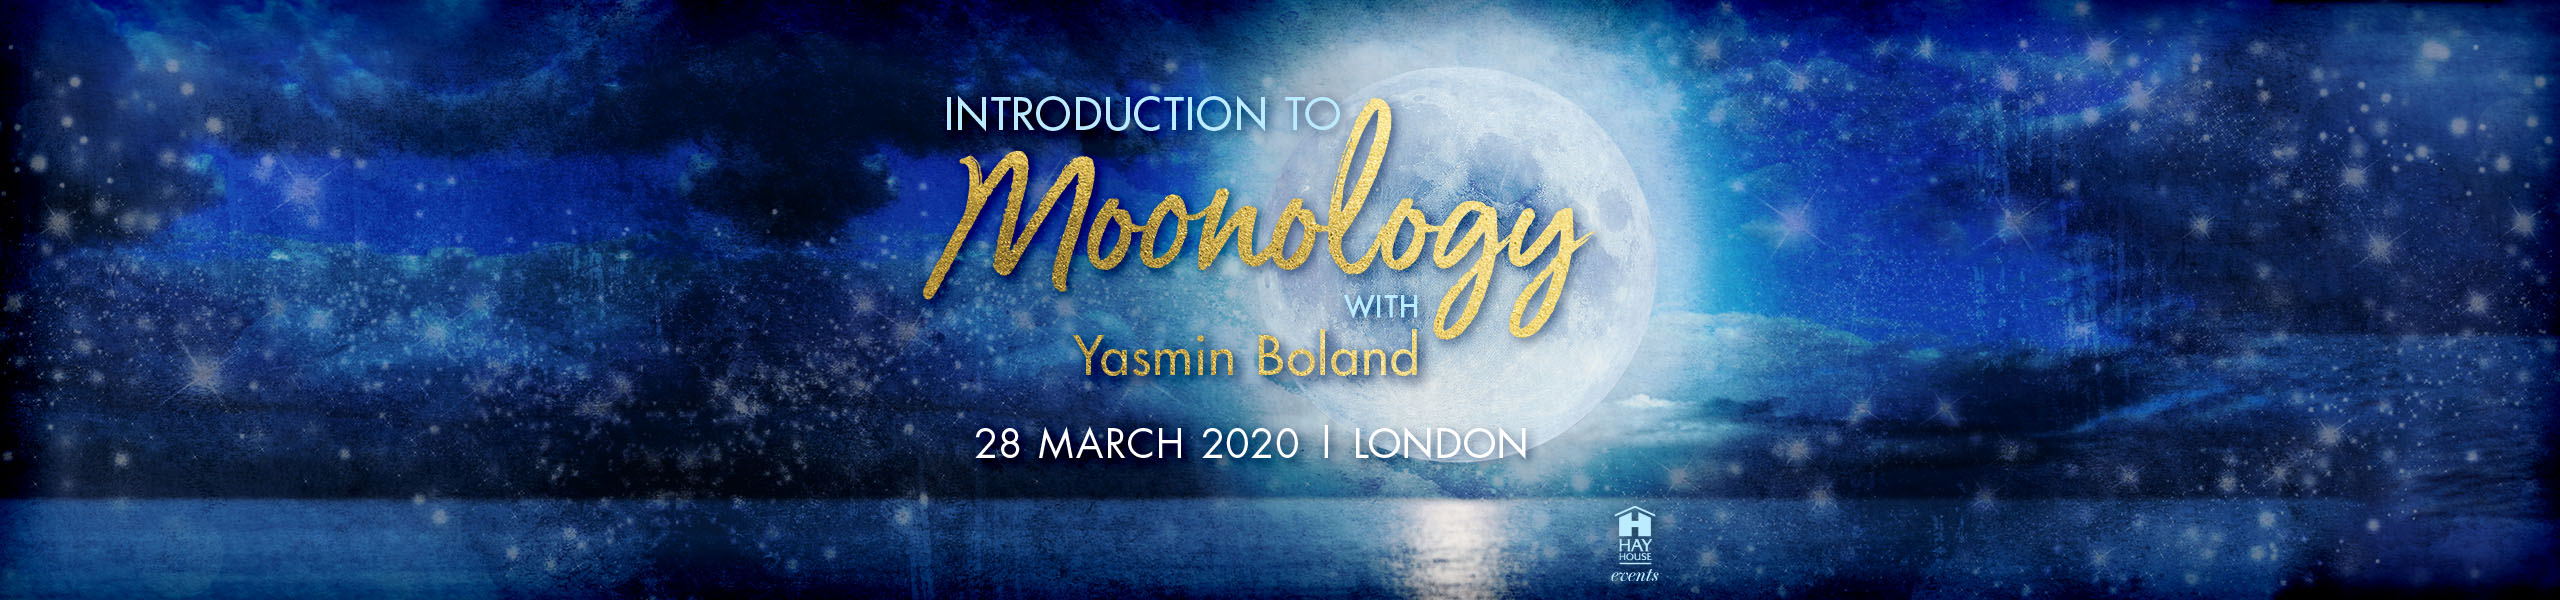 Introduction to Moonology